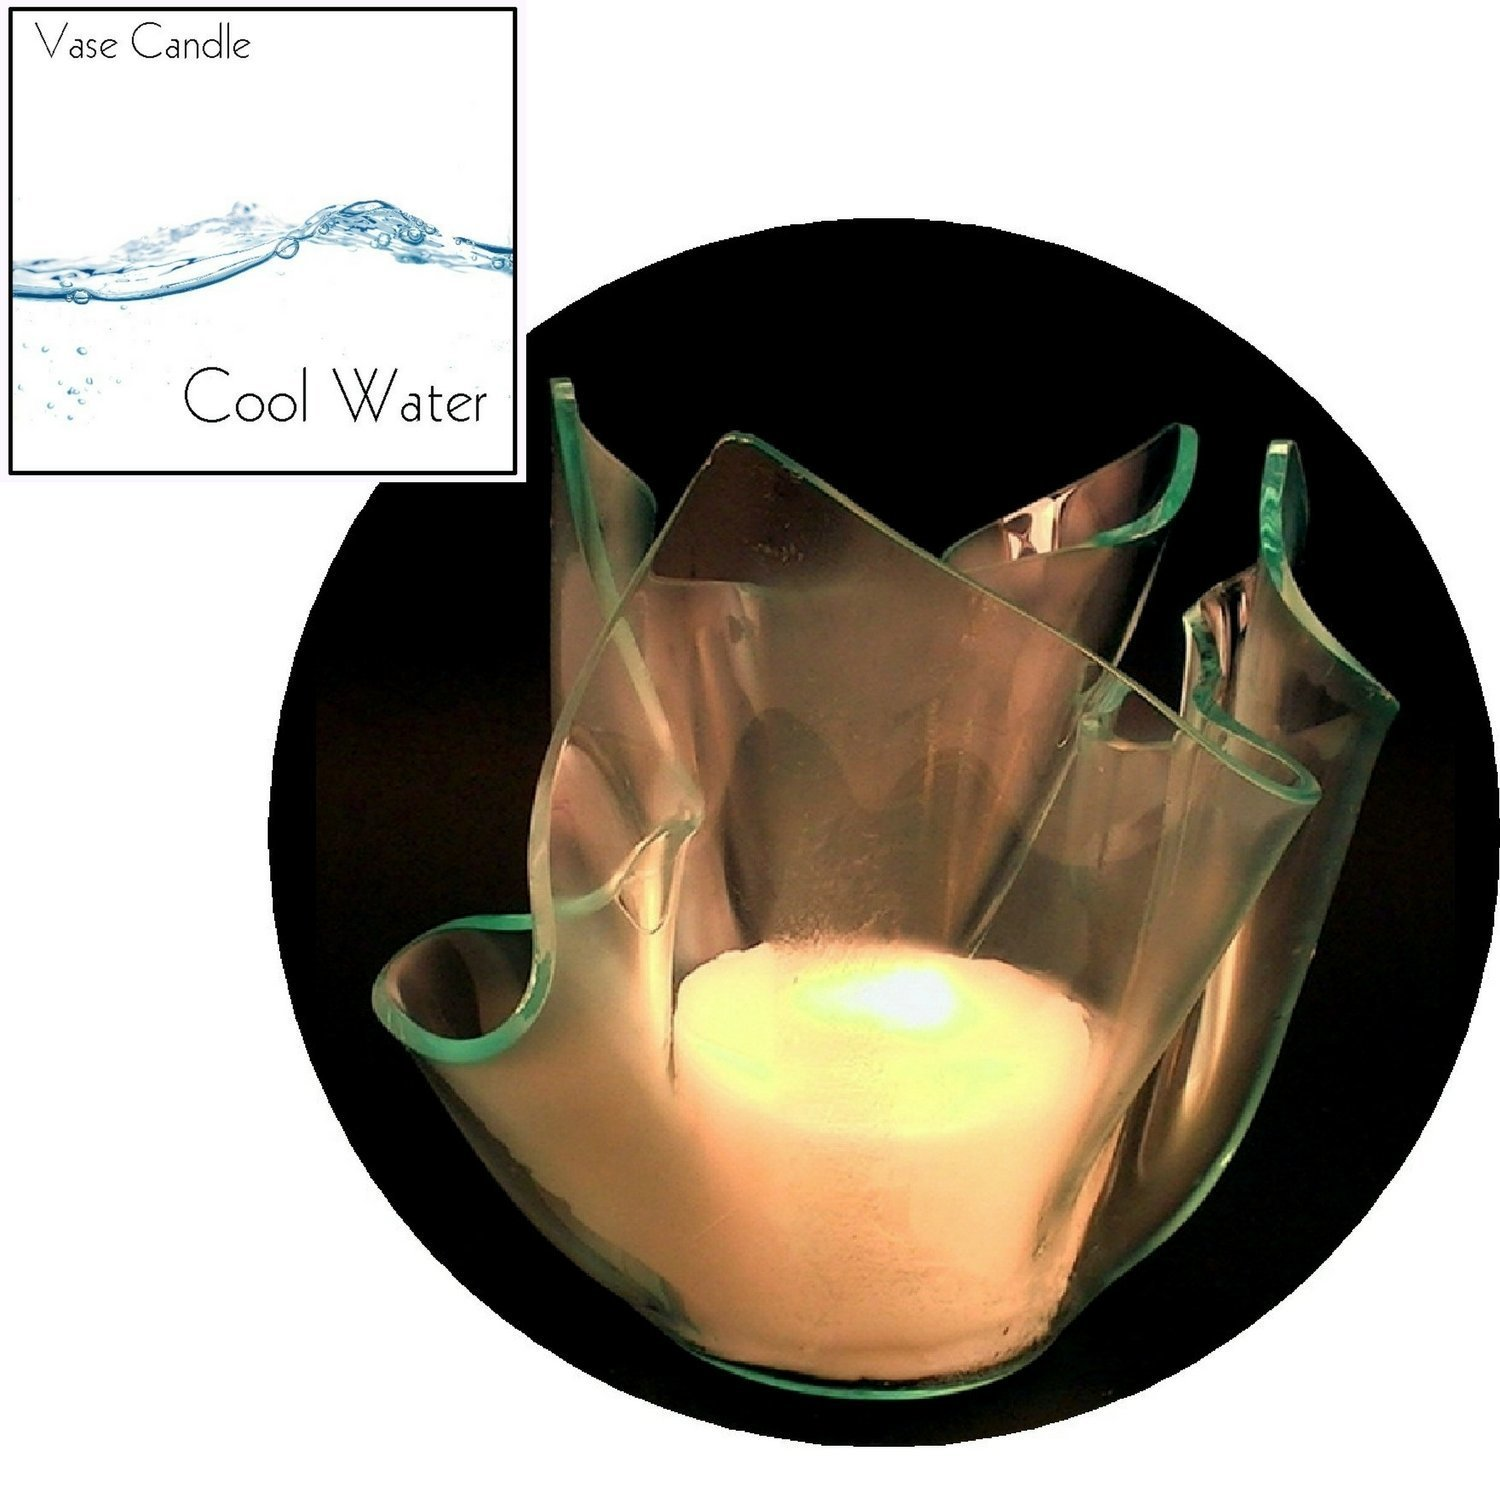 3 Cool Water Candle Refills | Clear Satin Vase